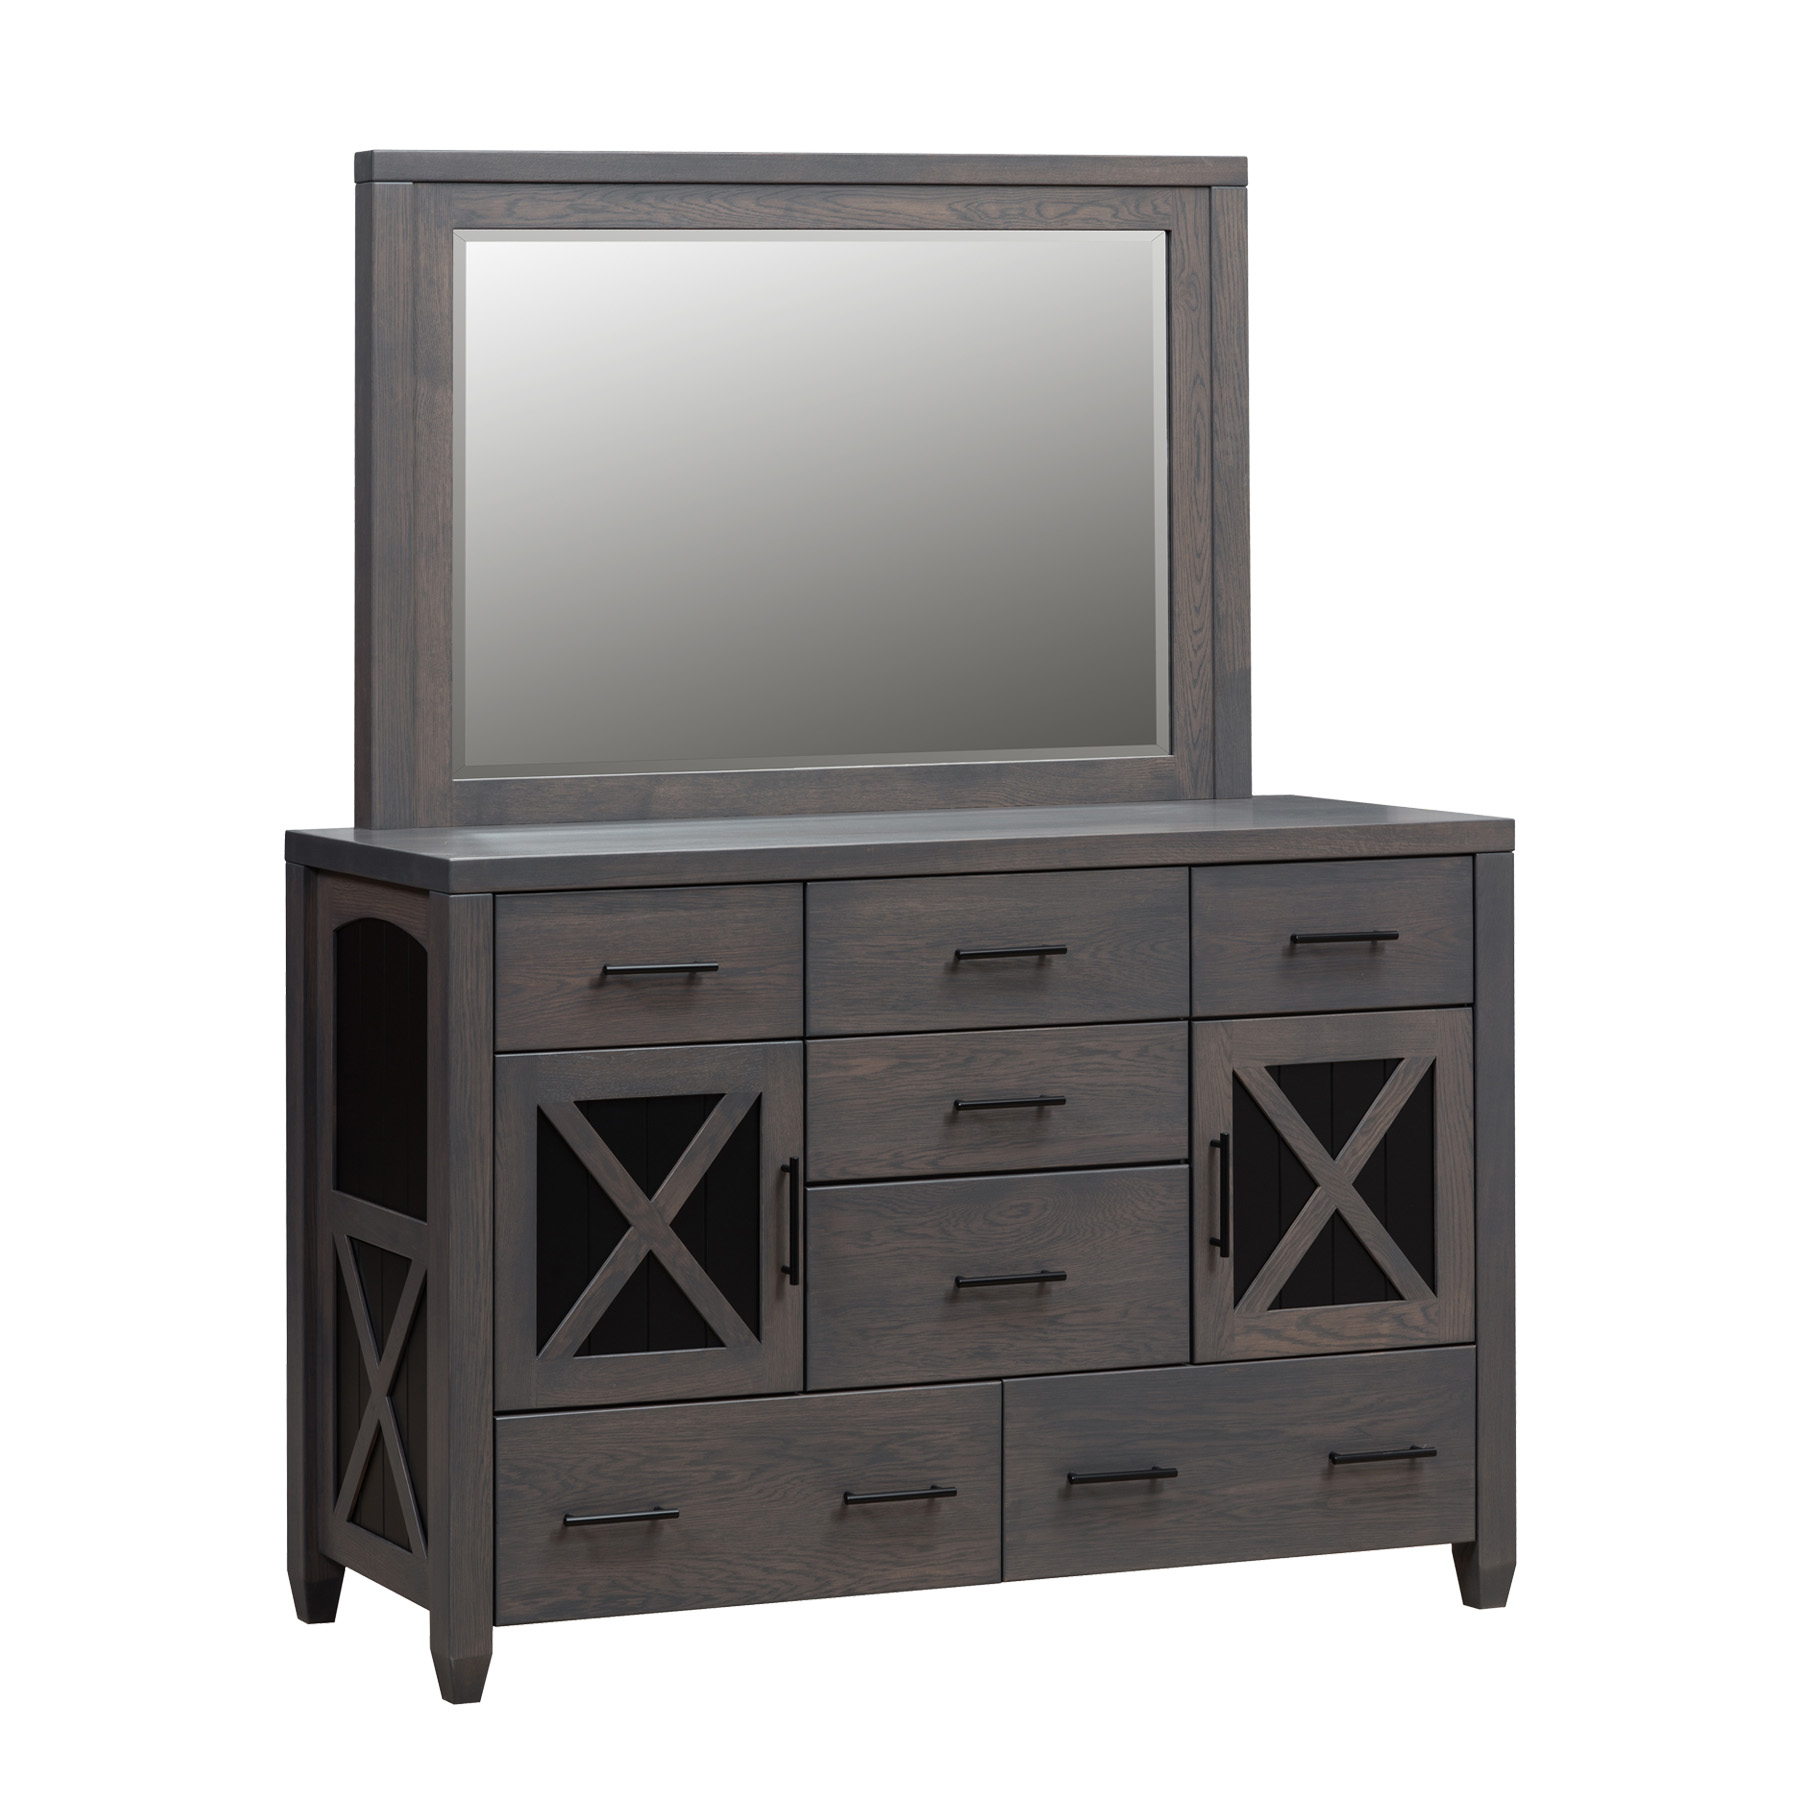 Nasua Double Dresser and Mirror